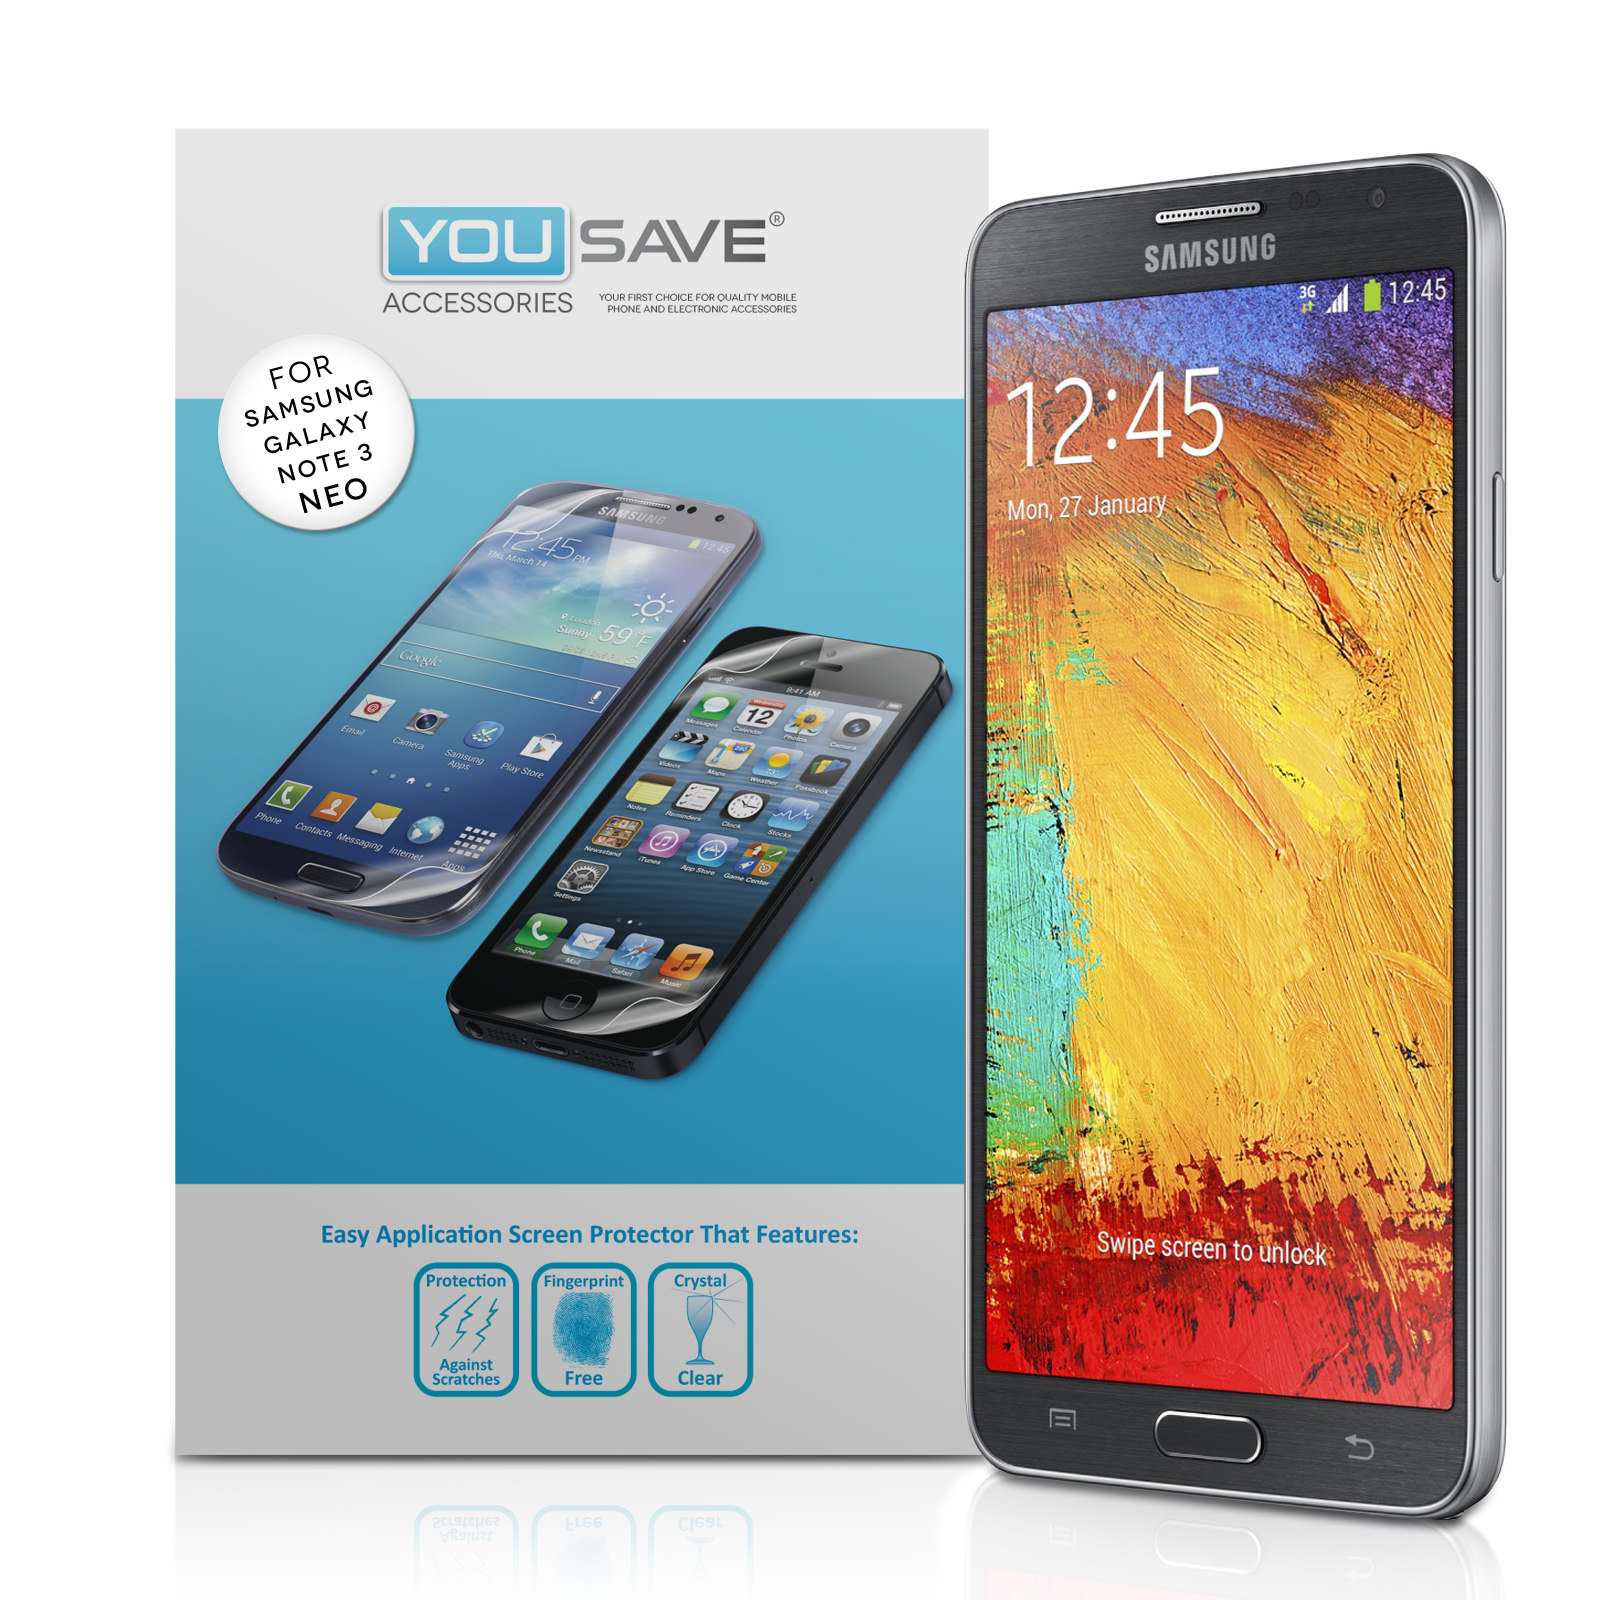 YouSave Accessories Samsung Galaxy Note 3 Neo Screen Protectors x5